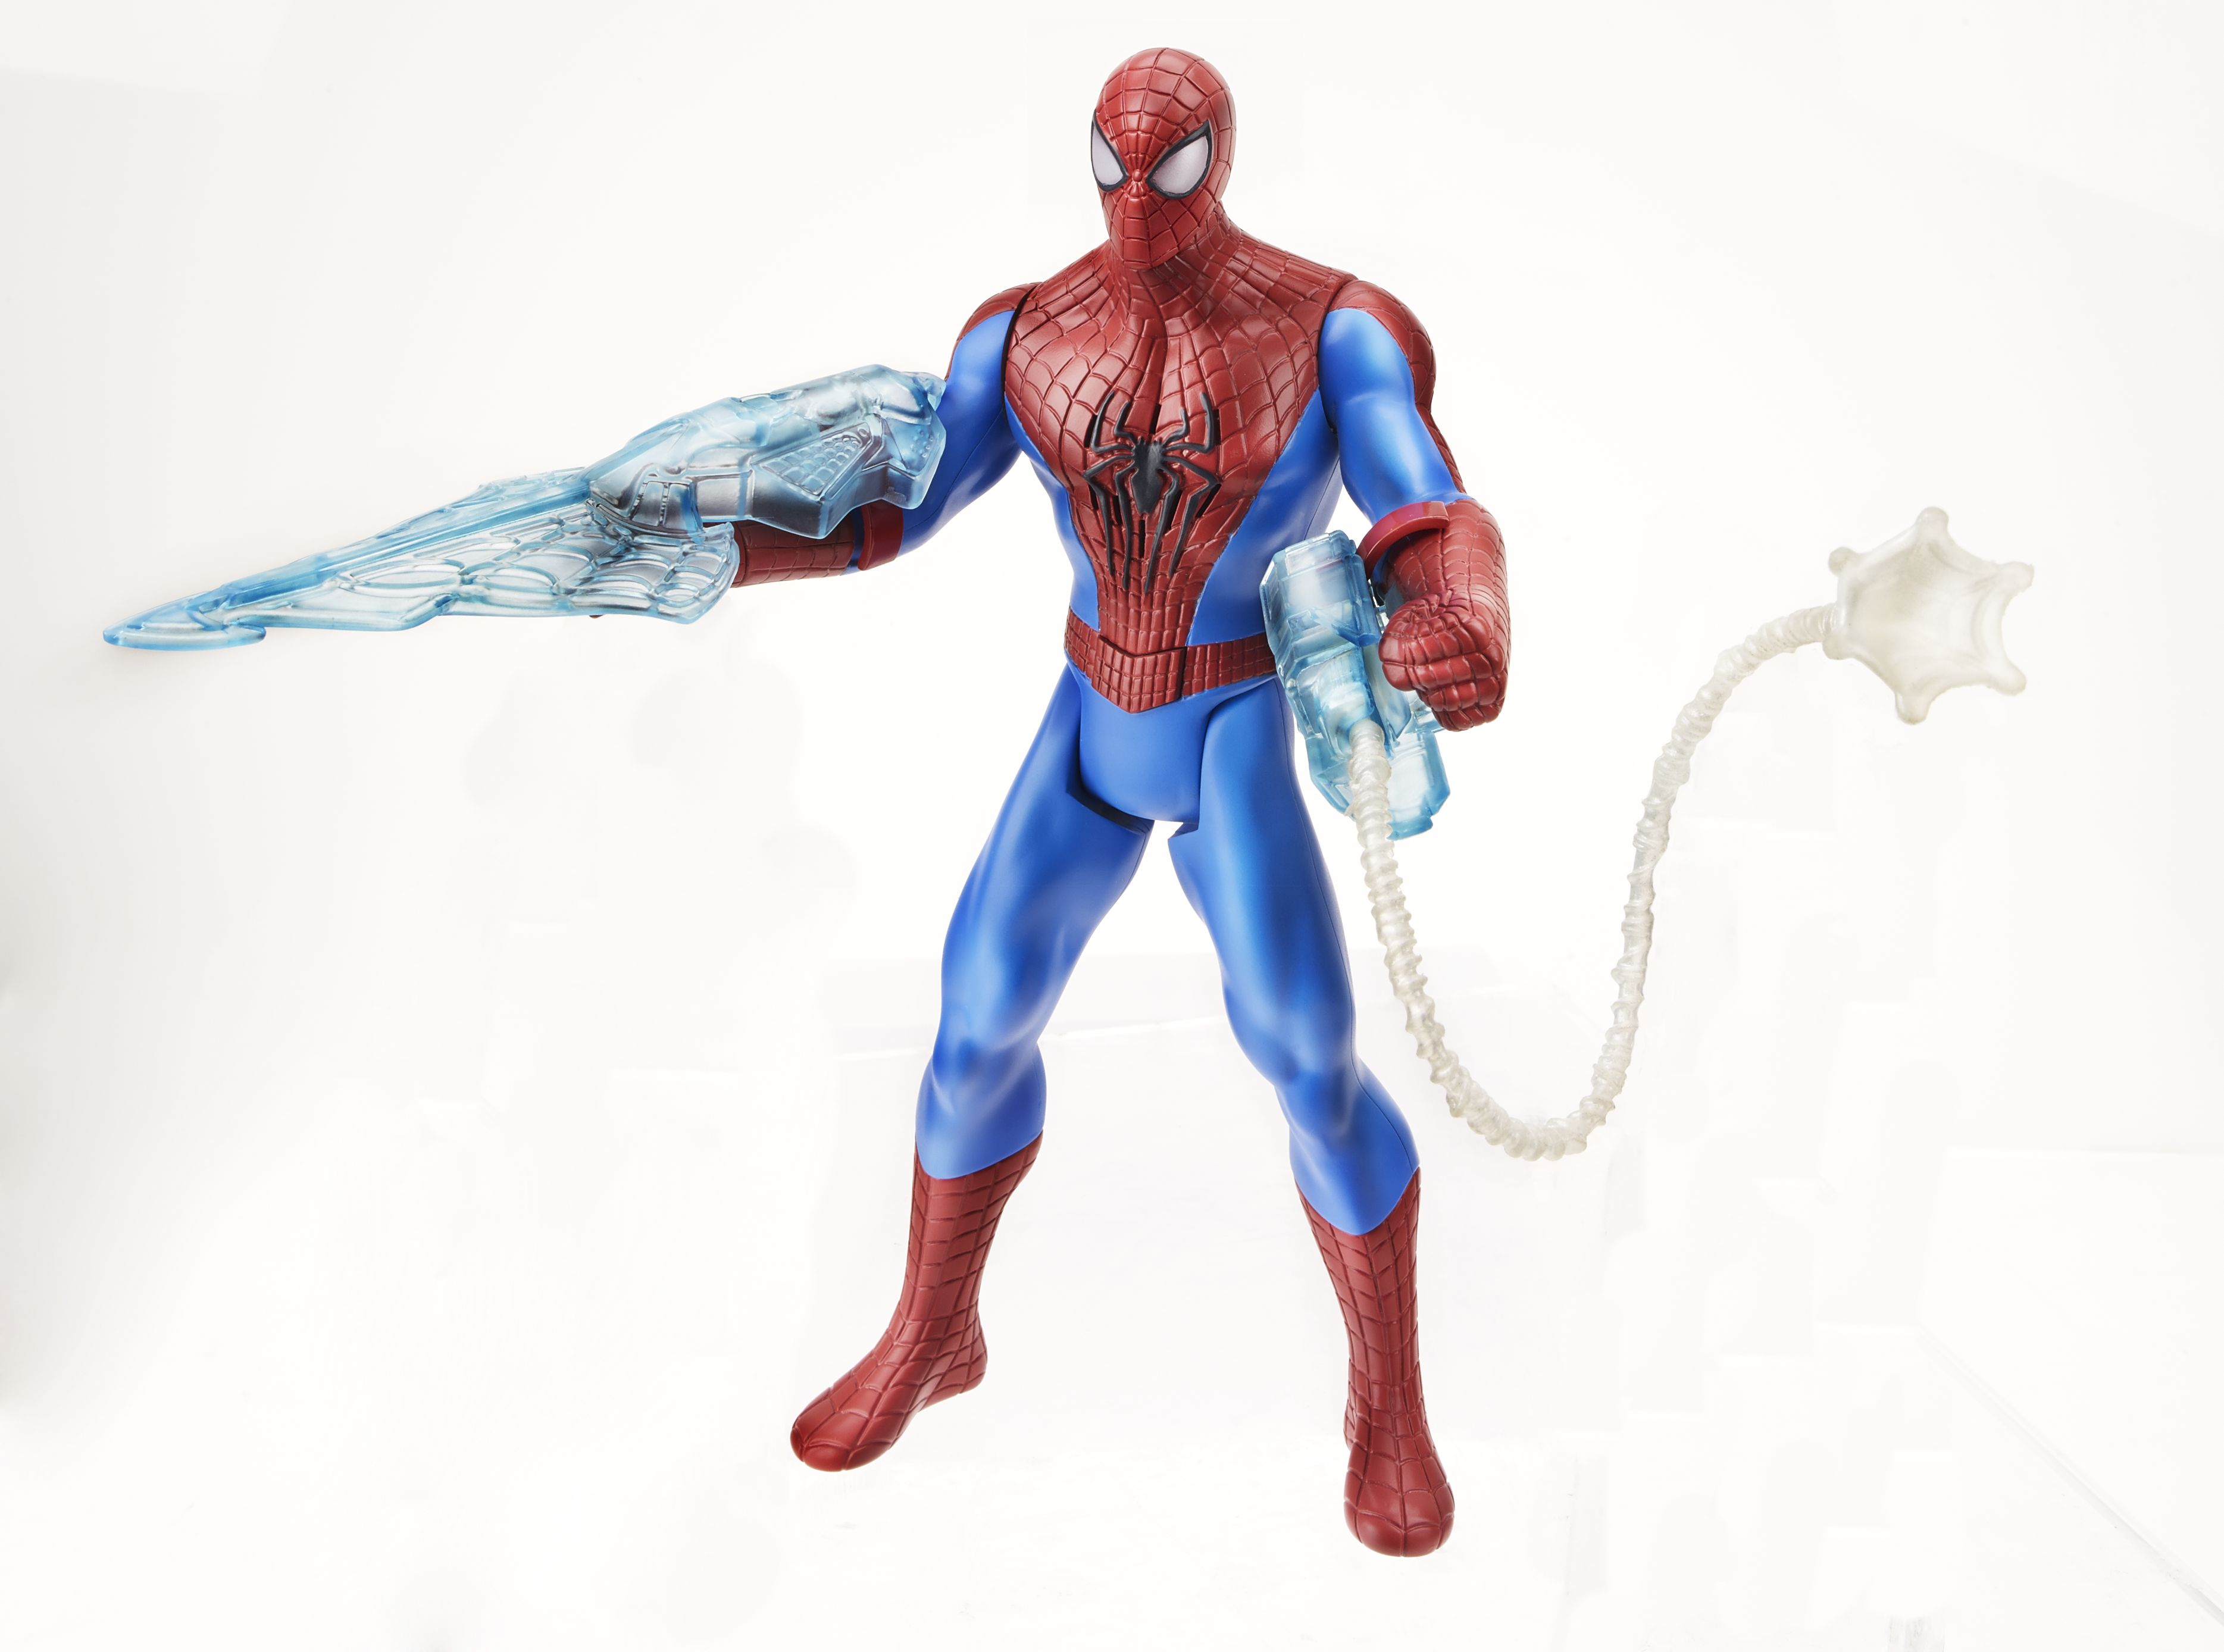 Kids Toys Action Figure: Hasbro Amazing Spiderman 2 Toys Press Release And Images